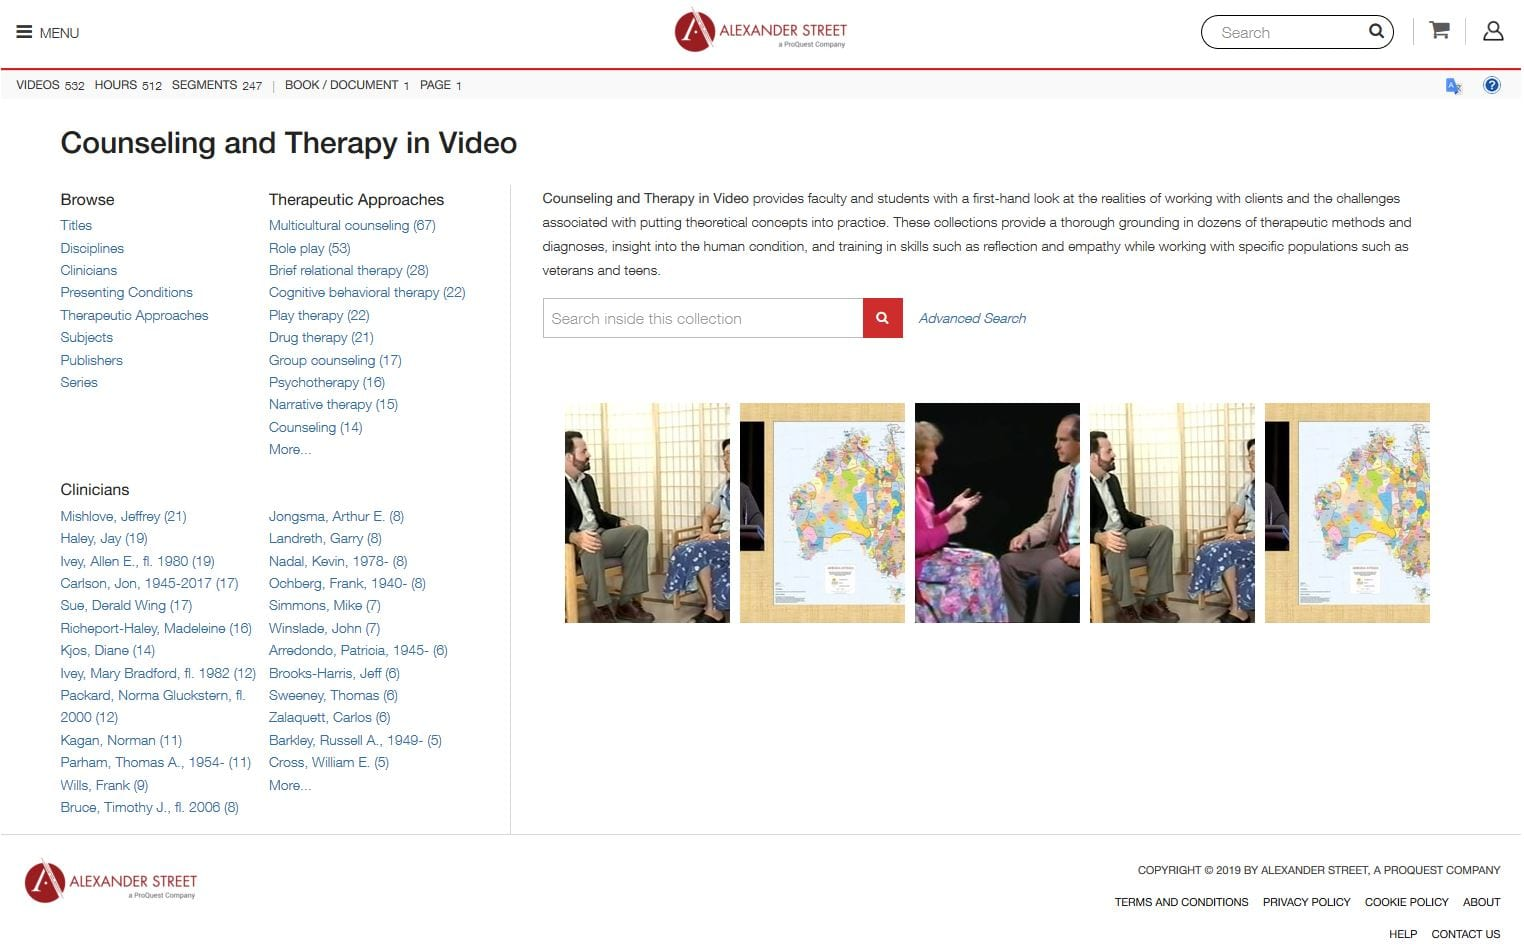 Counseling and Therapy in Video